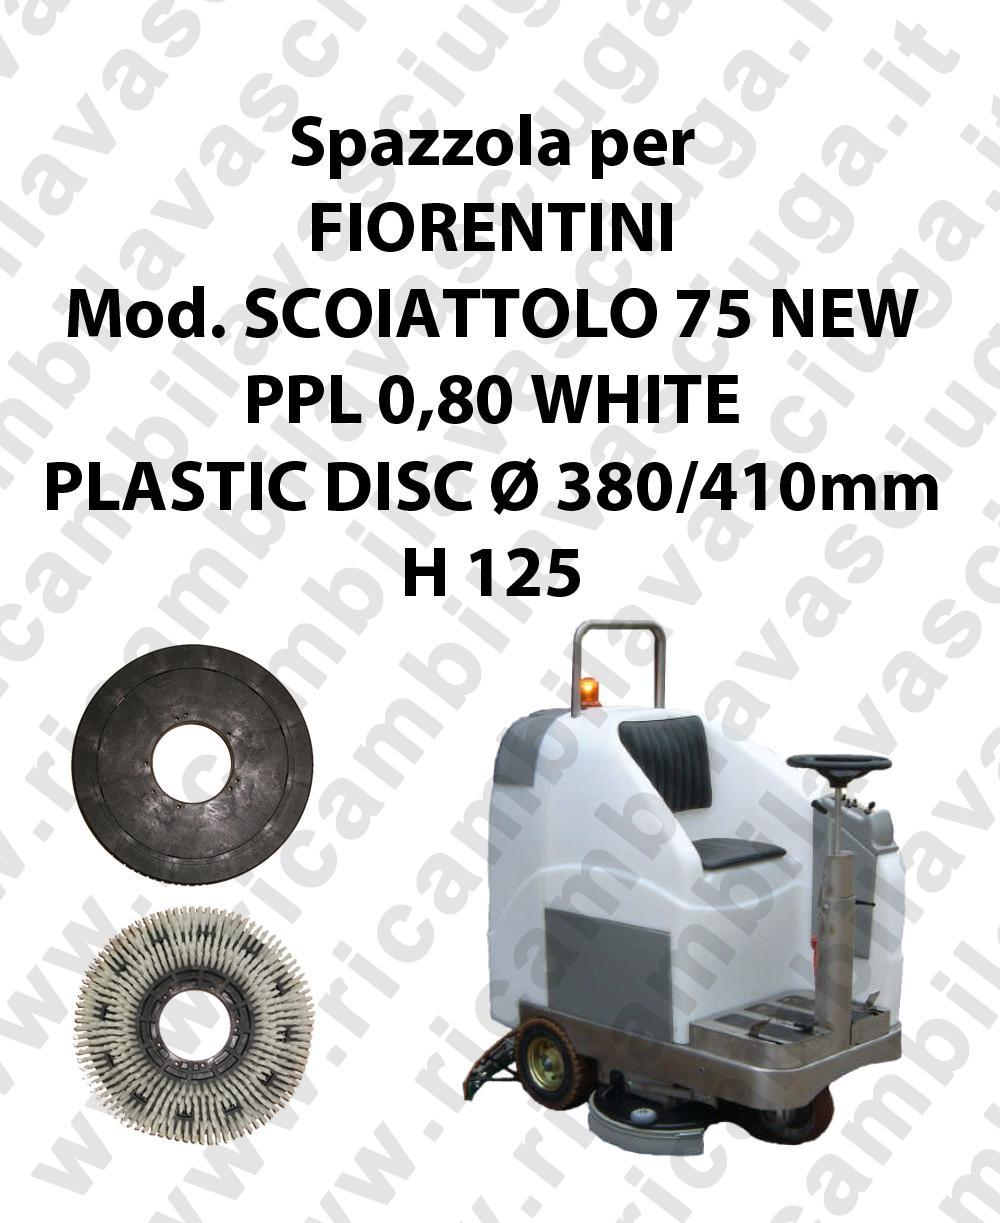 Cleaning Brush PPL 0,80 WHITE for scrubber dryer FIORENTINI Model SCOIATTOLO 75 NEW